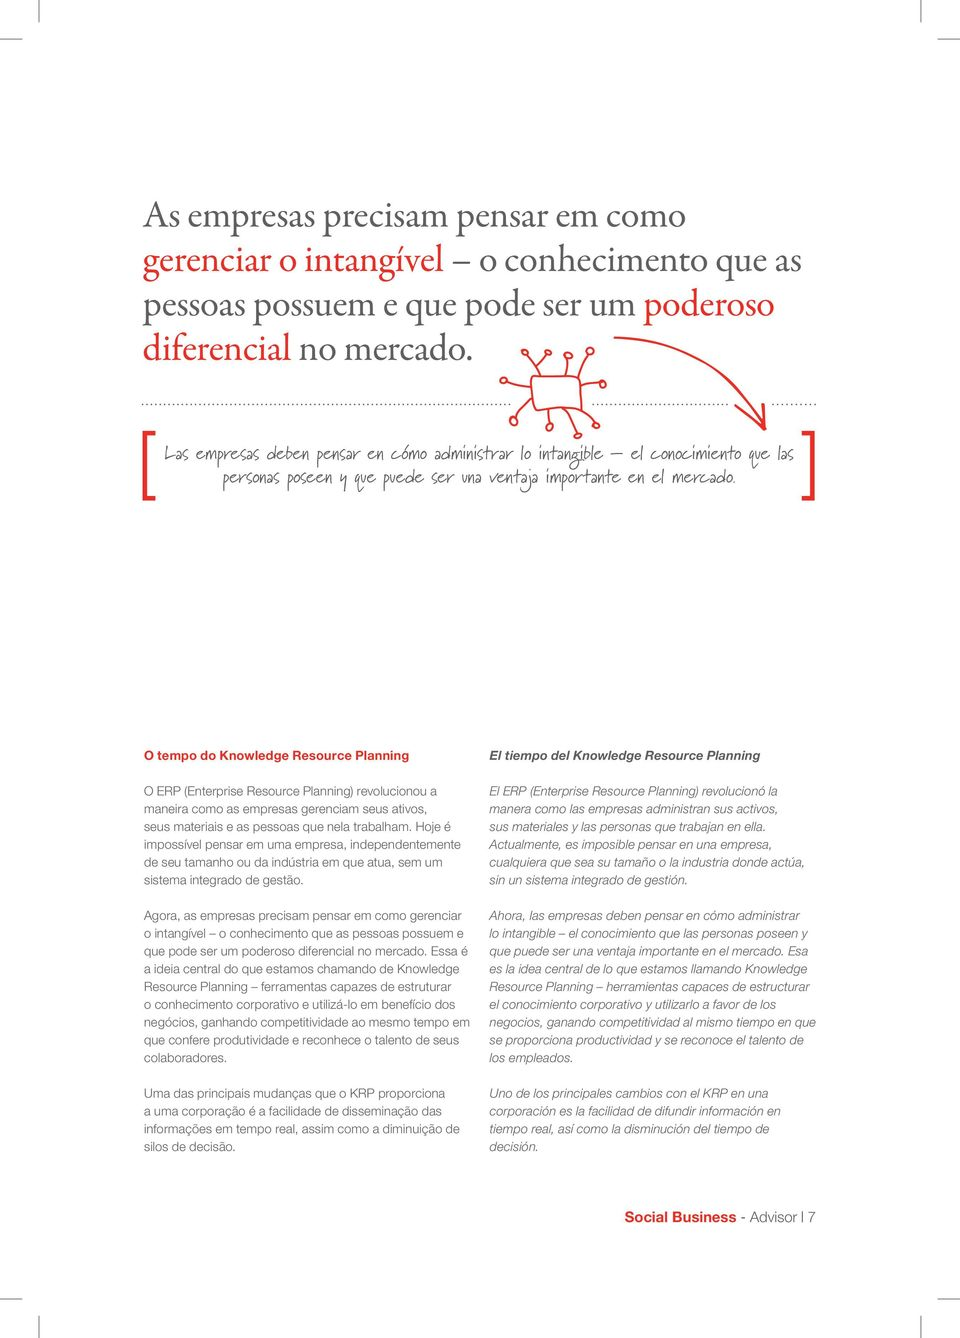 O tempo do Knowledge Resource Planning O ERP (Enterprise Resource Planning) revolucionou a maneira como as empresas gerenciam seus ativos, seus materiais e as pessoas que nela trabalham.